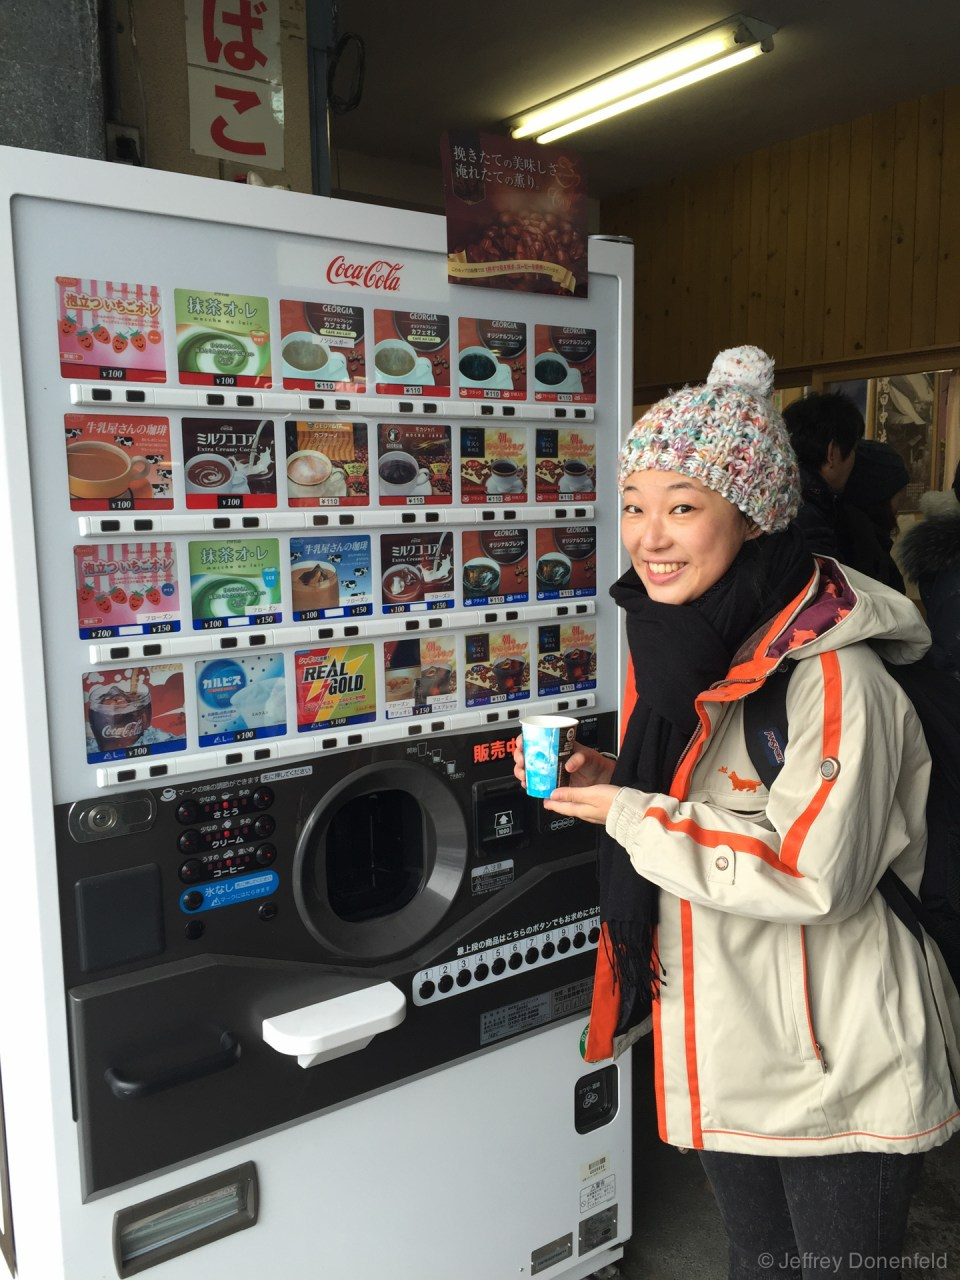 Vending machines are everywhere, and this one brews fresh coffee on demand.